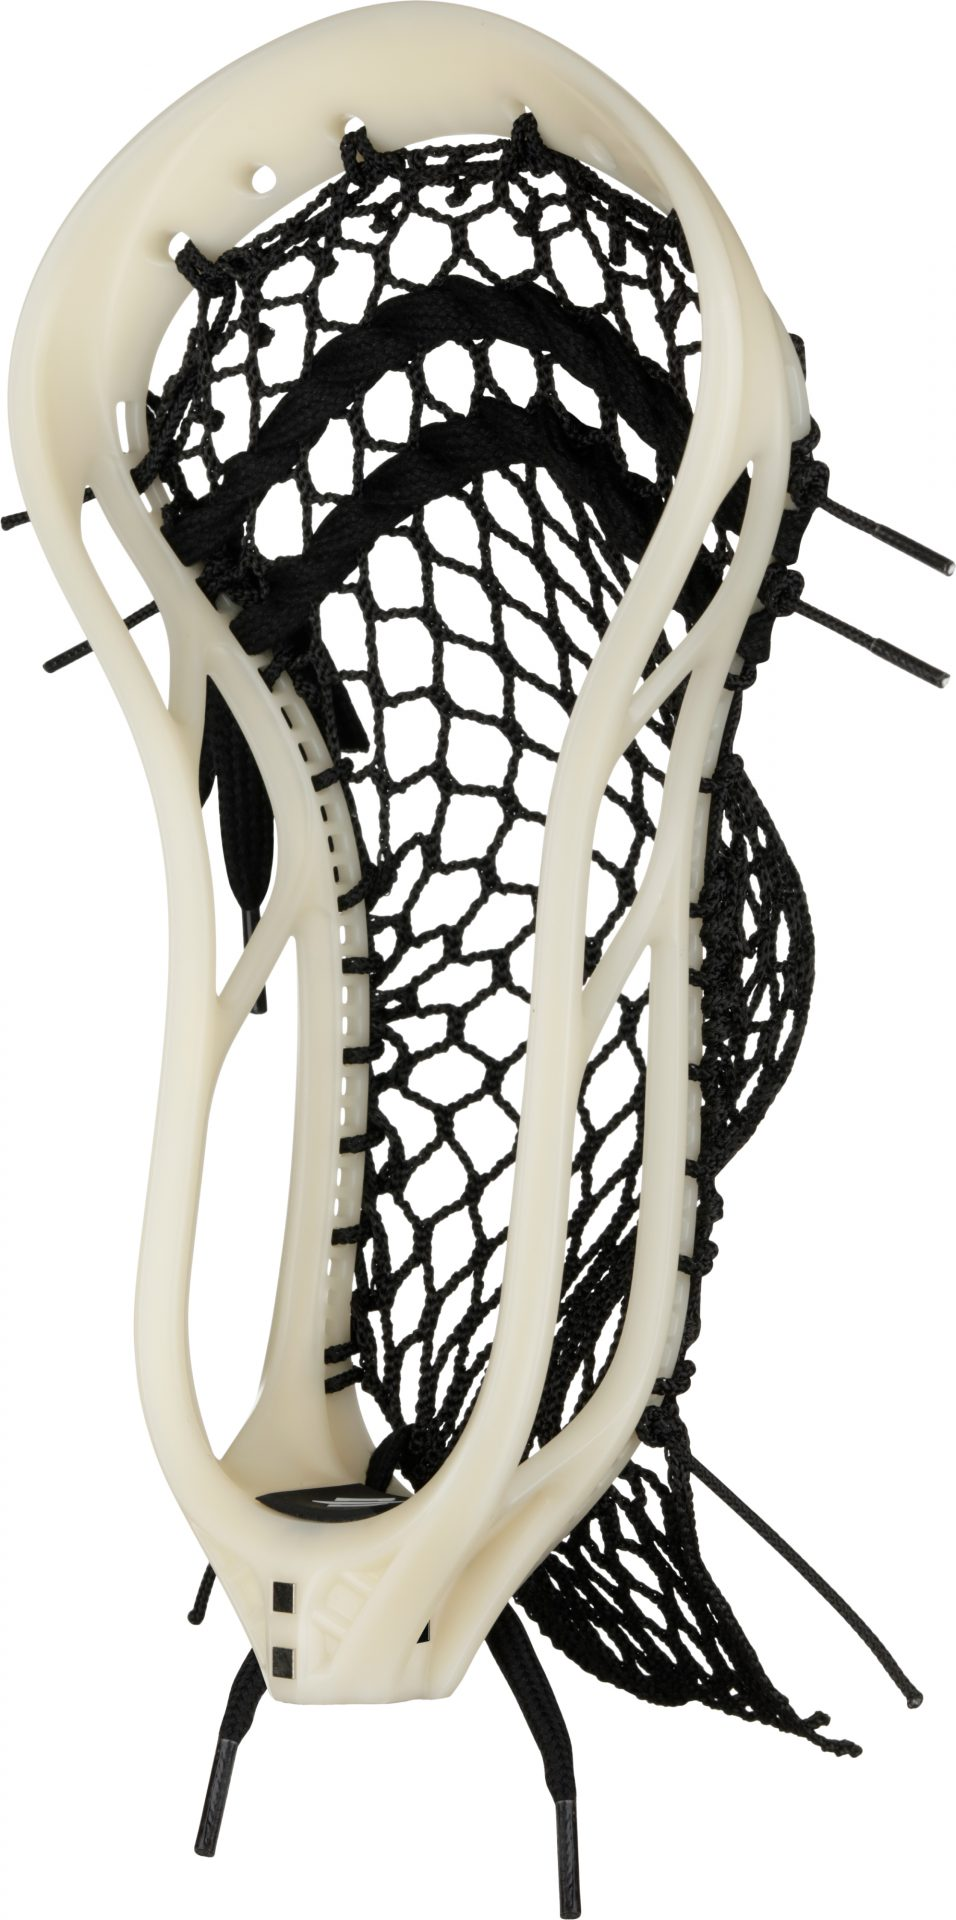 StringKing Lacrosse Mark 2F Stiff Raw Black Angle View